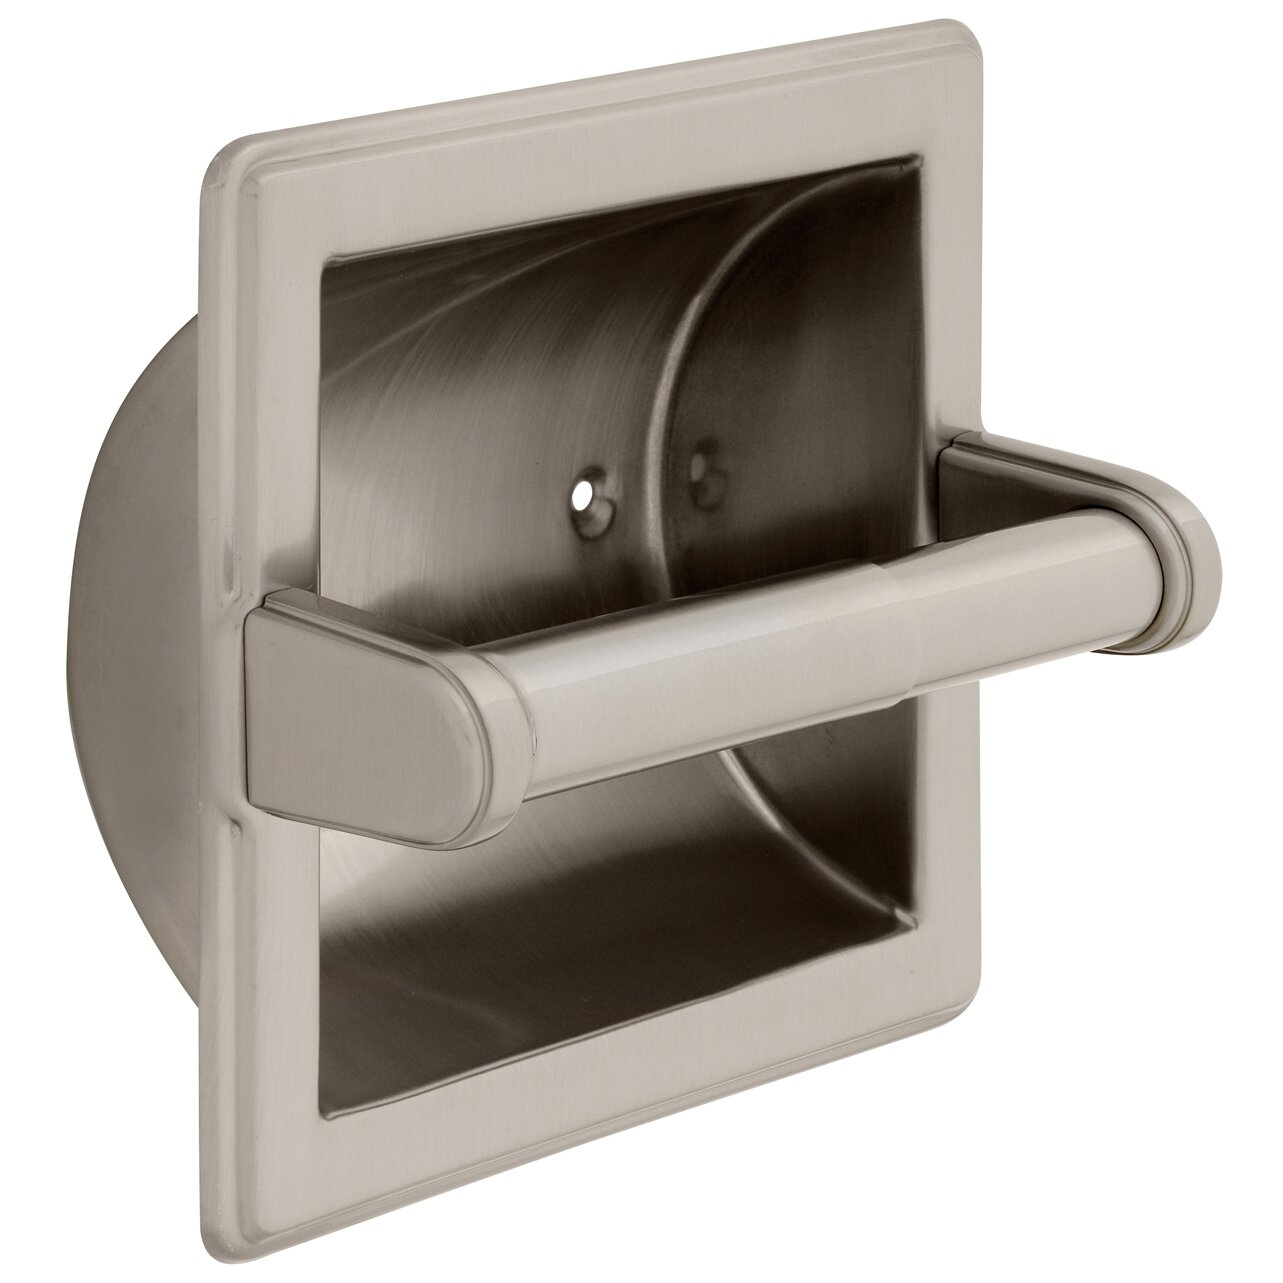 Franklin Brass Recessed Toilet Paper Holder Reviews